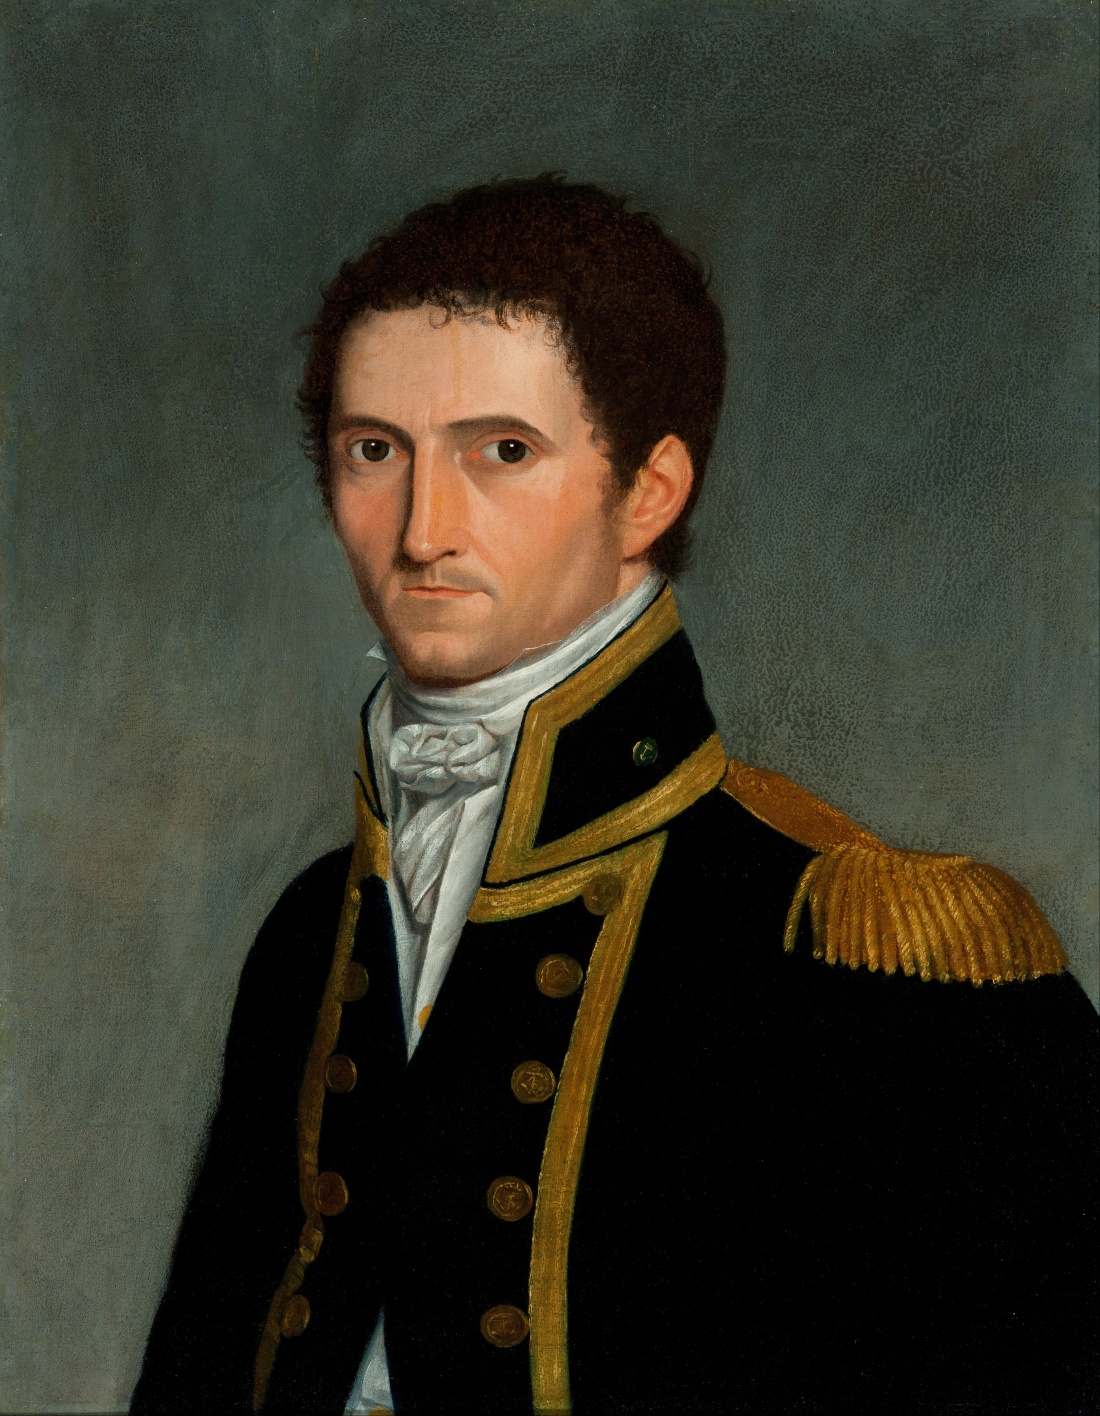 Toussaint_Antoine_DE_CHAZAL_DE_Chamerel_-_Portrait_of_Captain_Matthew_Flinders,_RN,_1774-1814_-_Google_Art_Project (1)